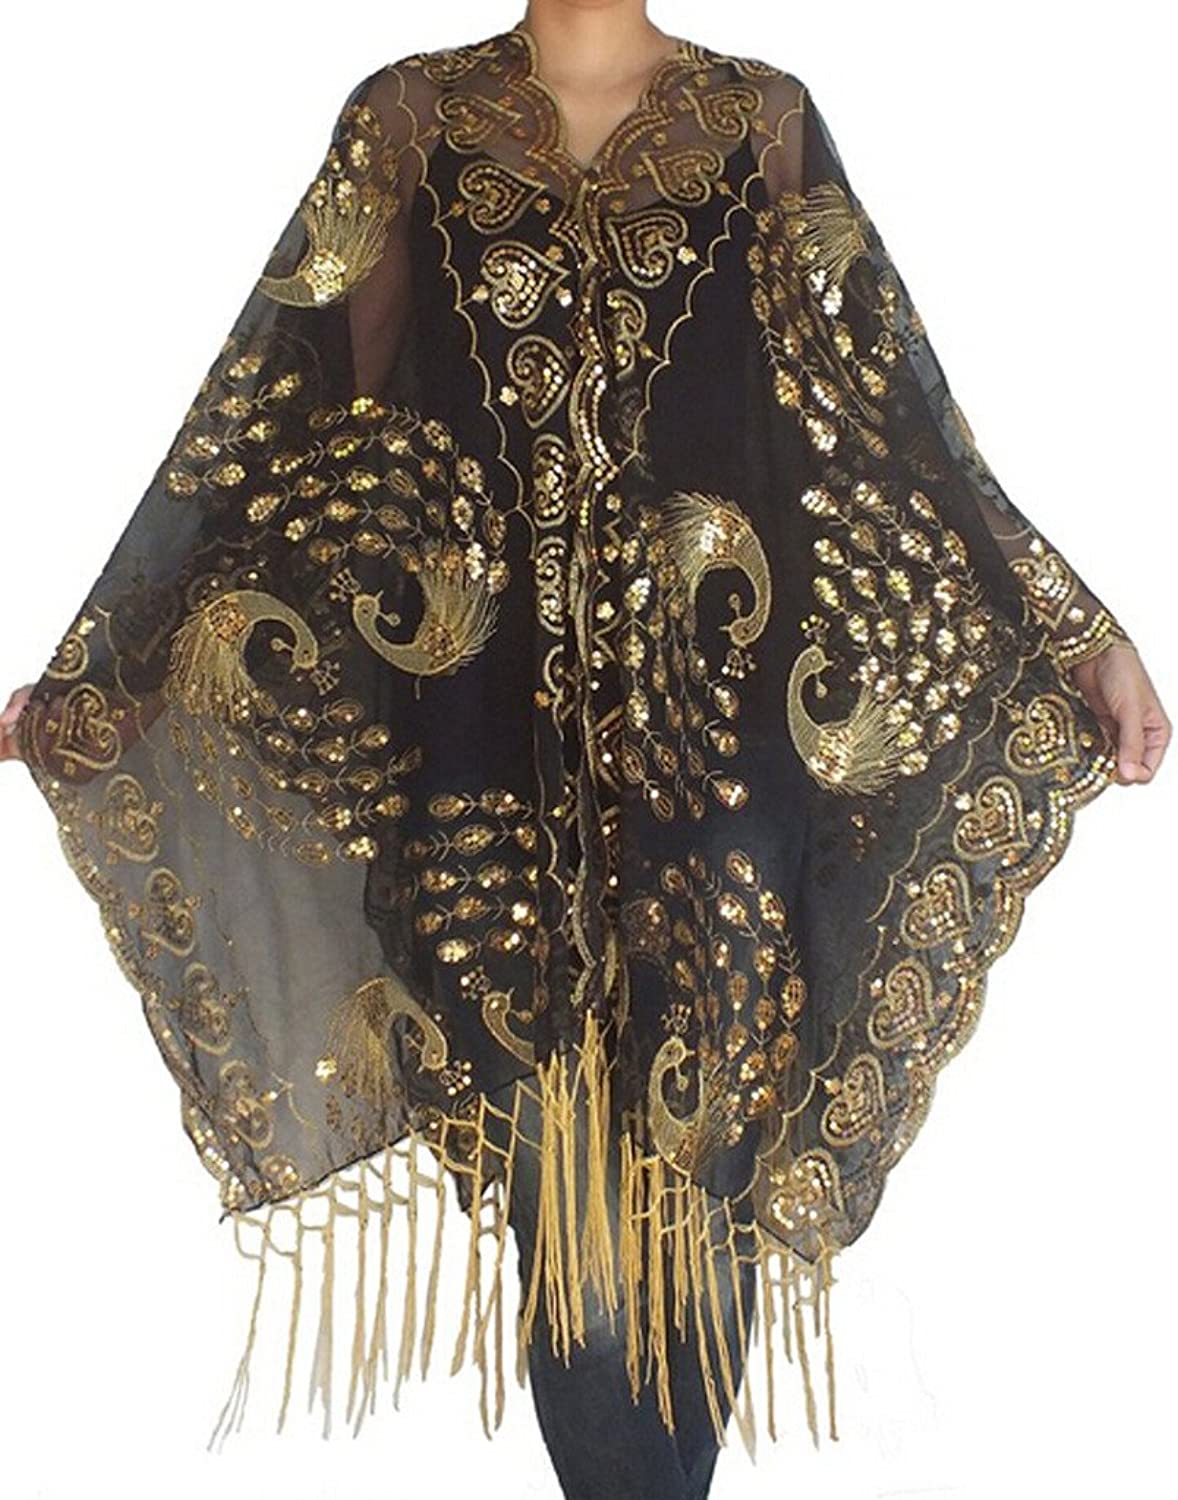 1920s Shawls, Scarves and Evening Jacket Tips  Peacock Phoenix Embroidery Sequins Wedding Scarf Shawls $19.99 AT vintagedancer.com